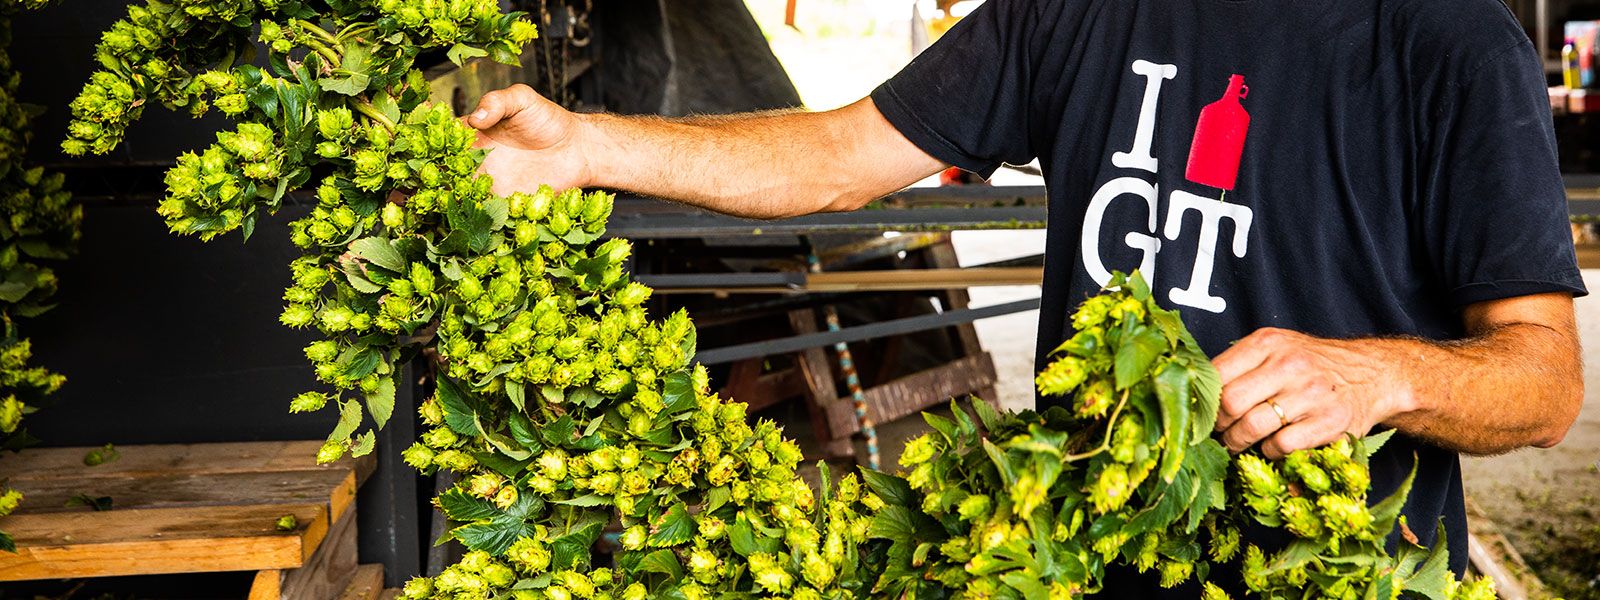 Hops farms are growing across the country.